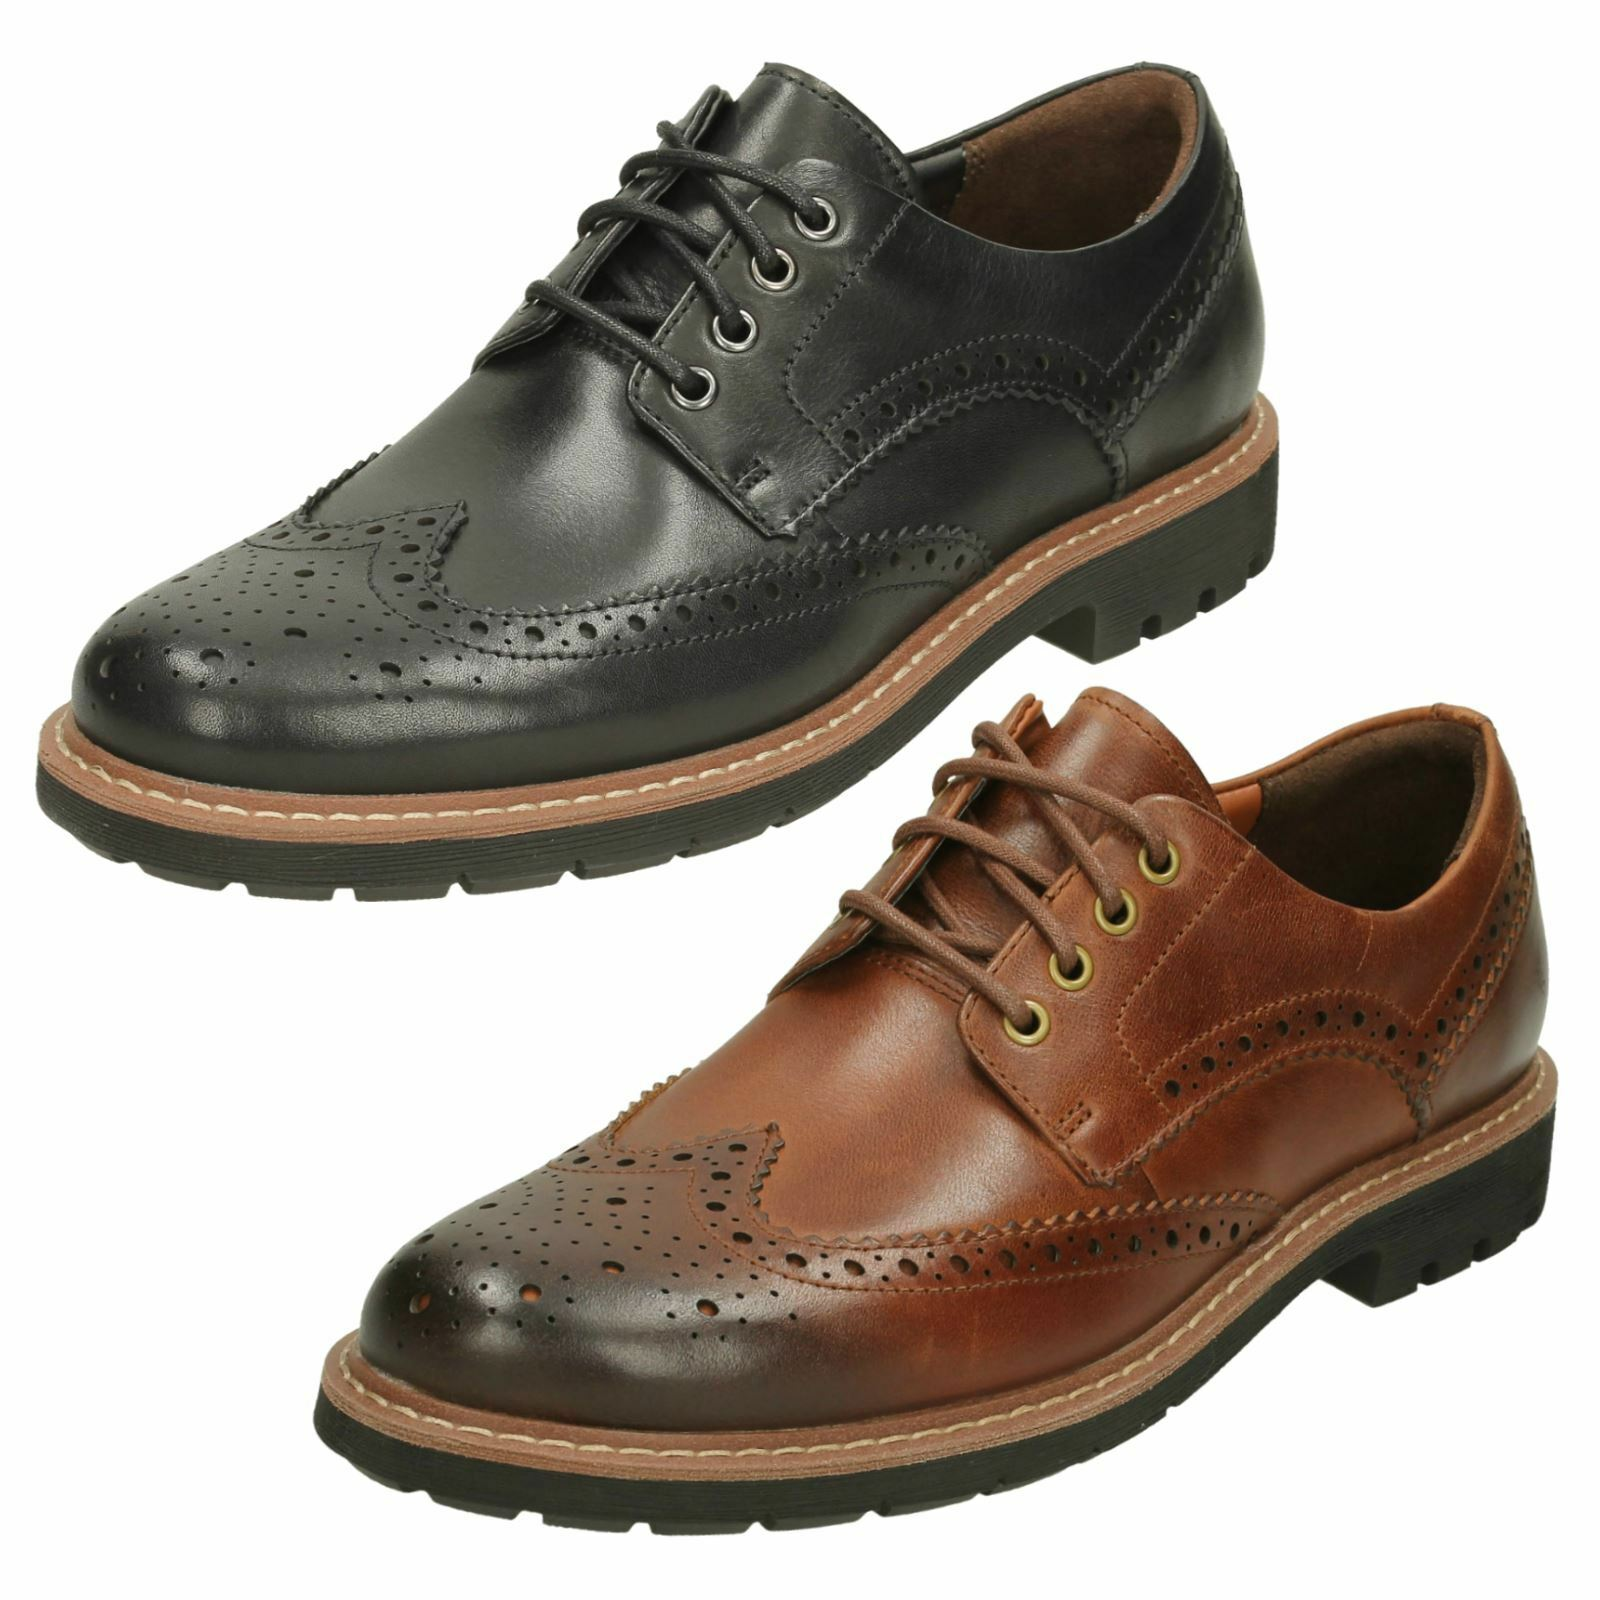 Mr/Ms Shopping Clarks Mens Formal Brogues Batcombe Wing Online Shopping Mr/Ms Low price Complete specifications e35bf7